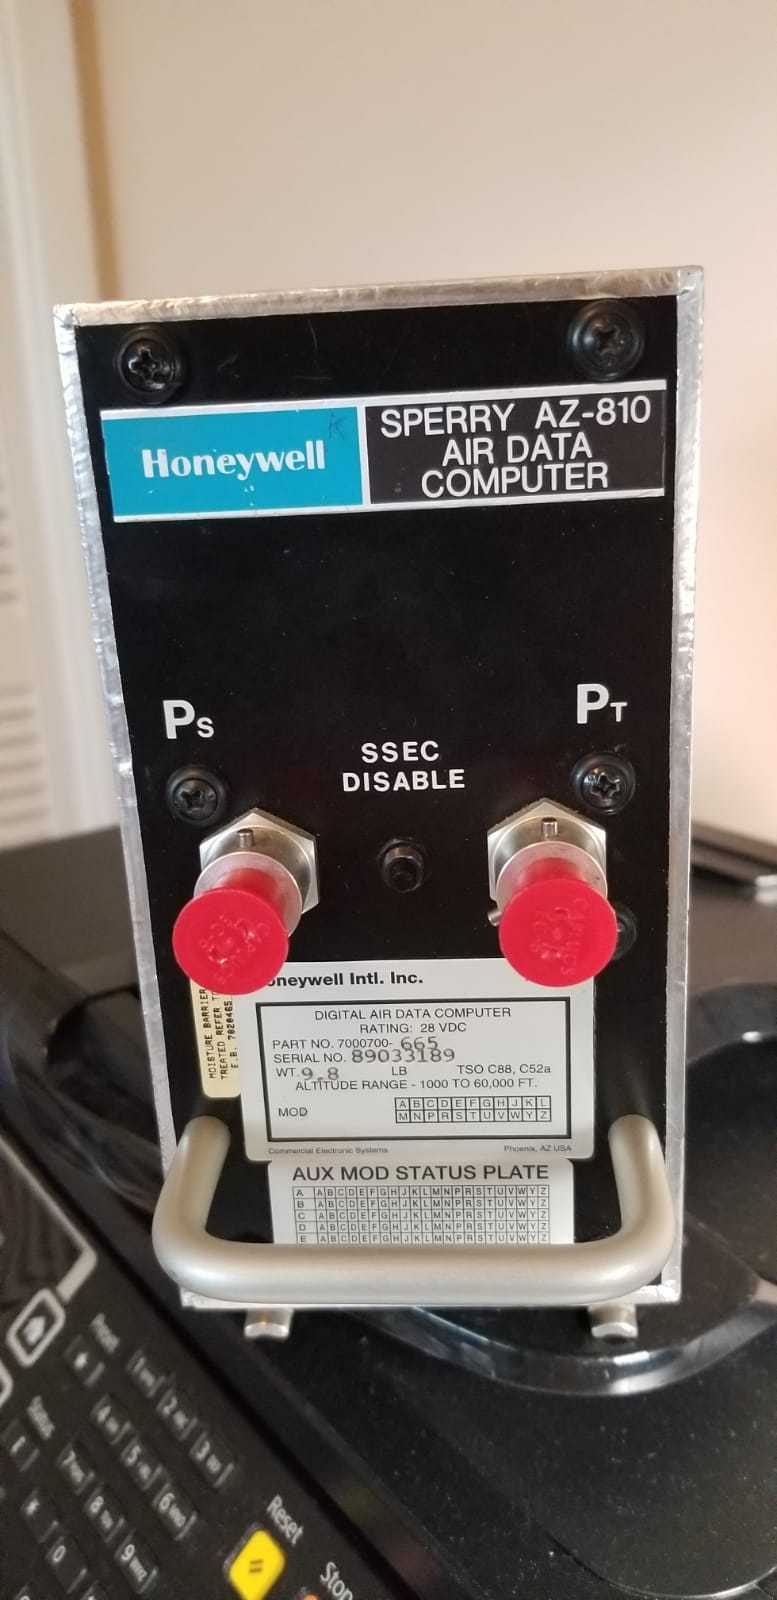 Brand new Honeywell - AZ 810